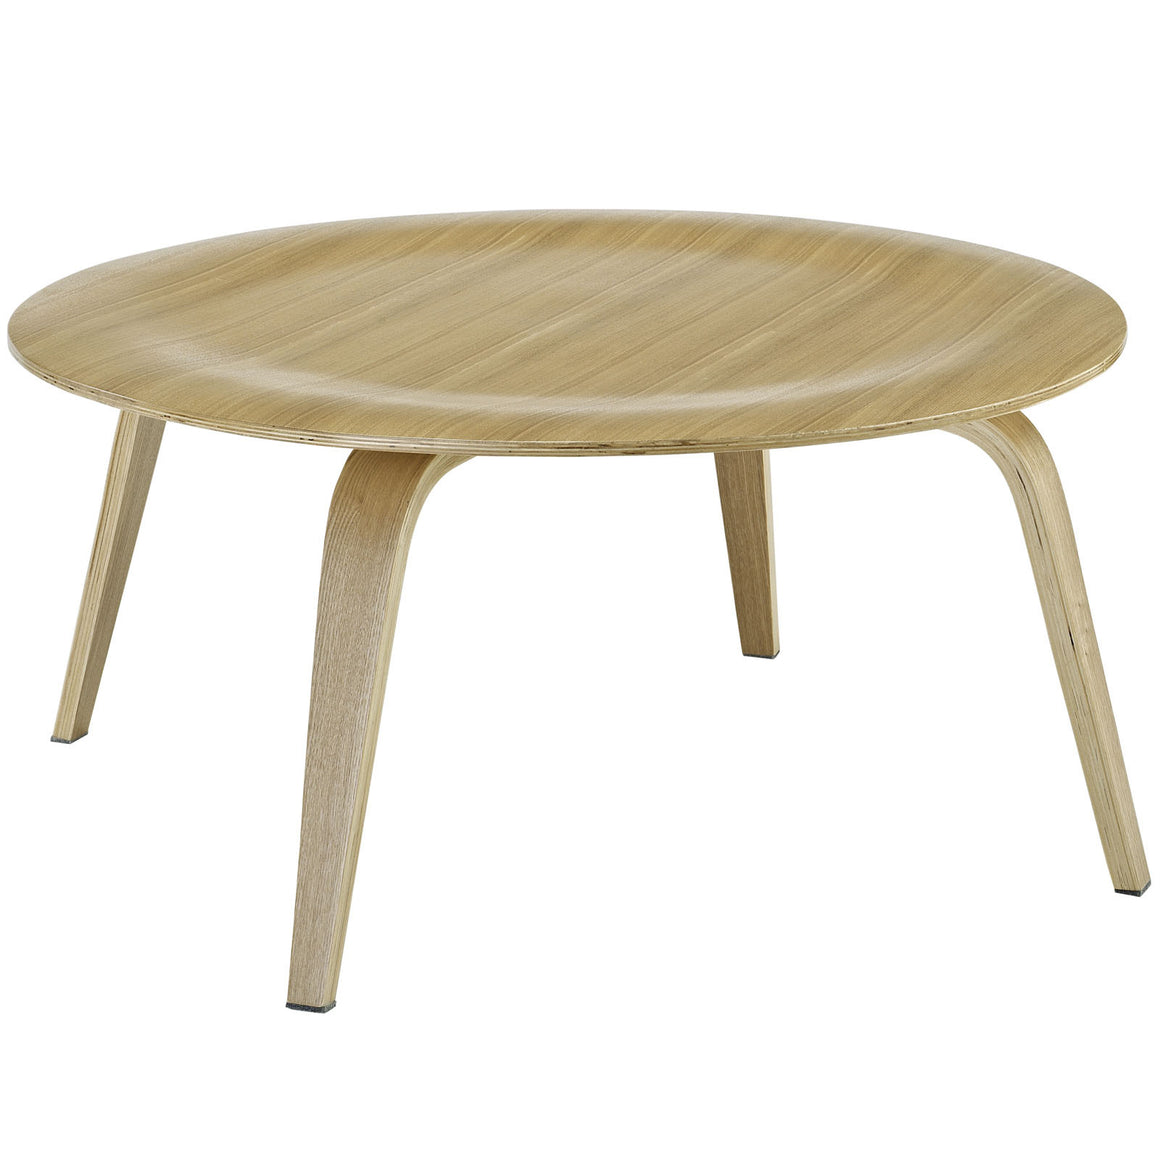 Classic Design Plywood Coffee Table - taylor ray decor